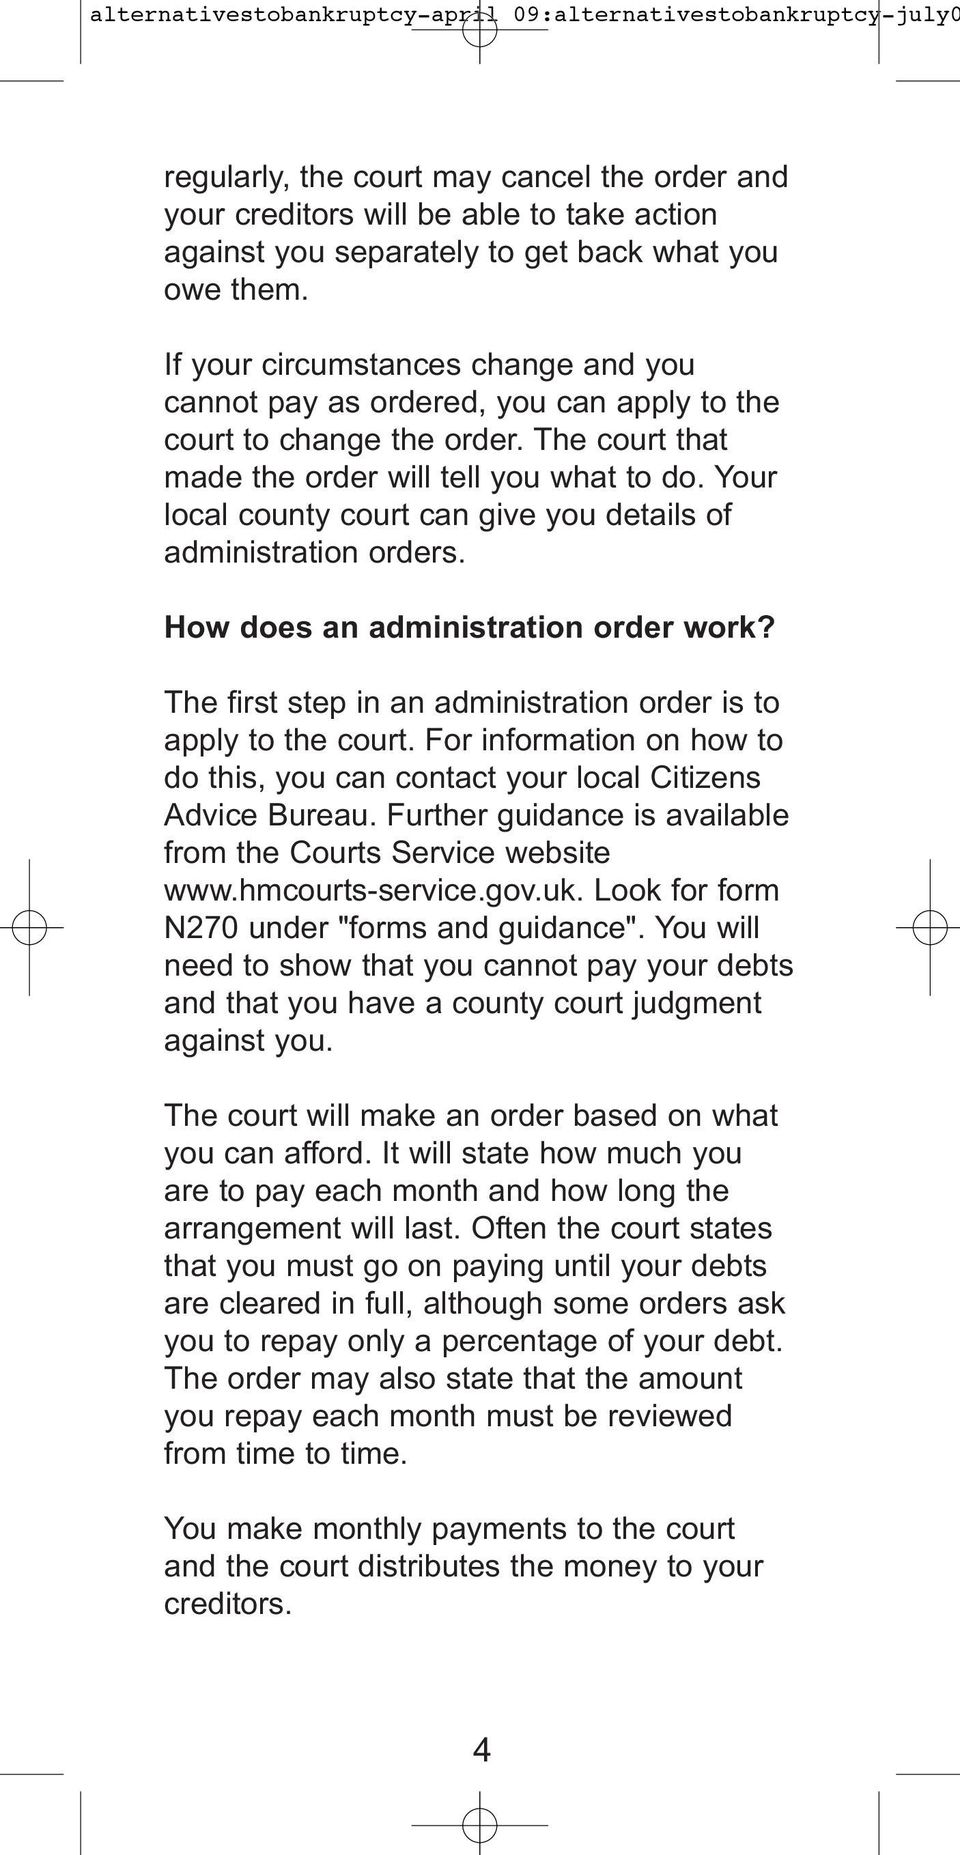 Your local county court can give you details of administration orders. How does an administration order work? The first step in an administration order is to apply to the court.